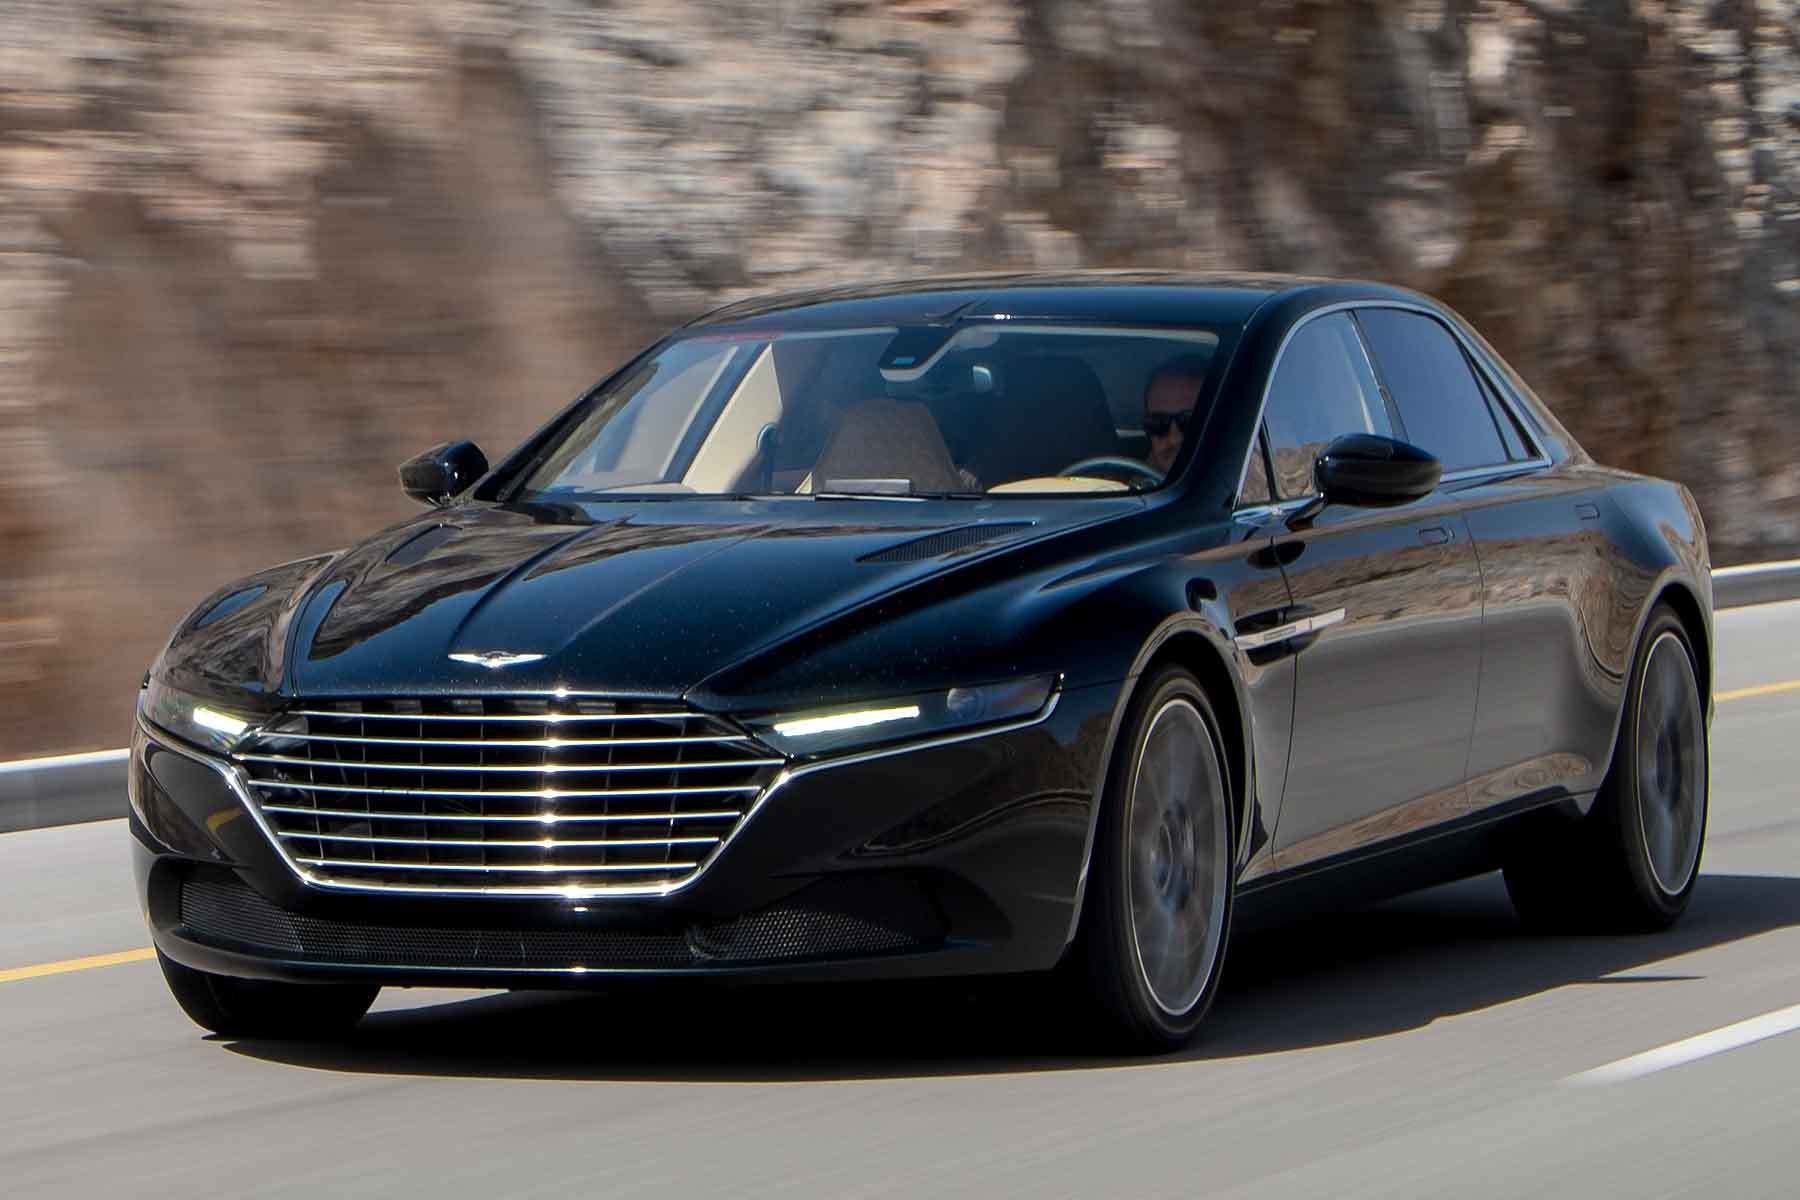 Latest Aston Martin Lagonda 2017 Hd Wallpapers Free Download